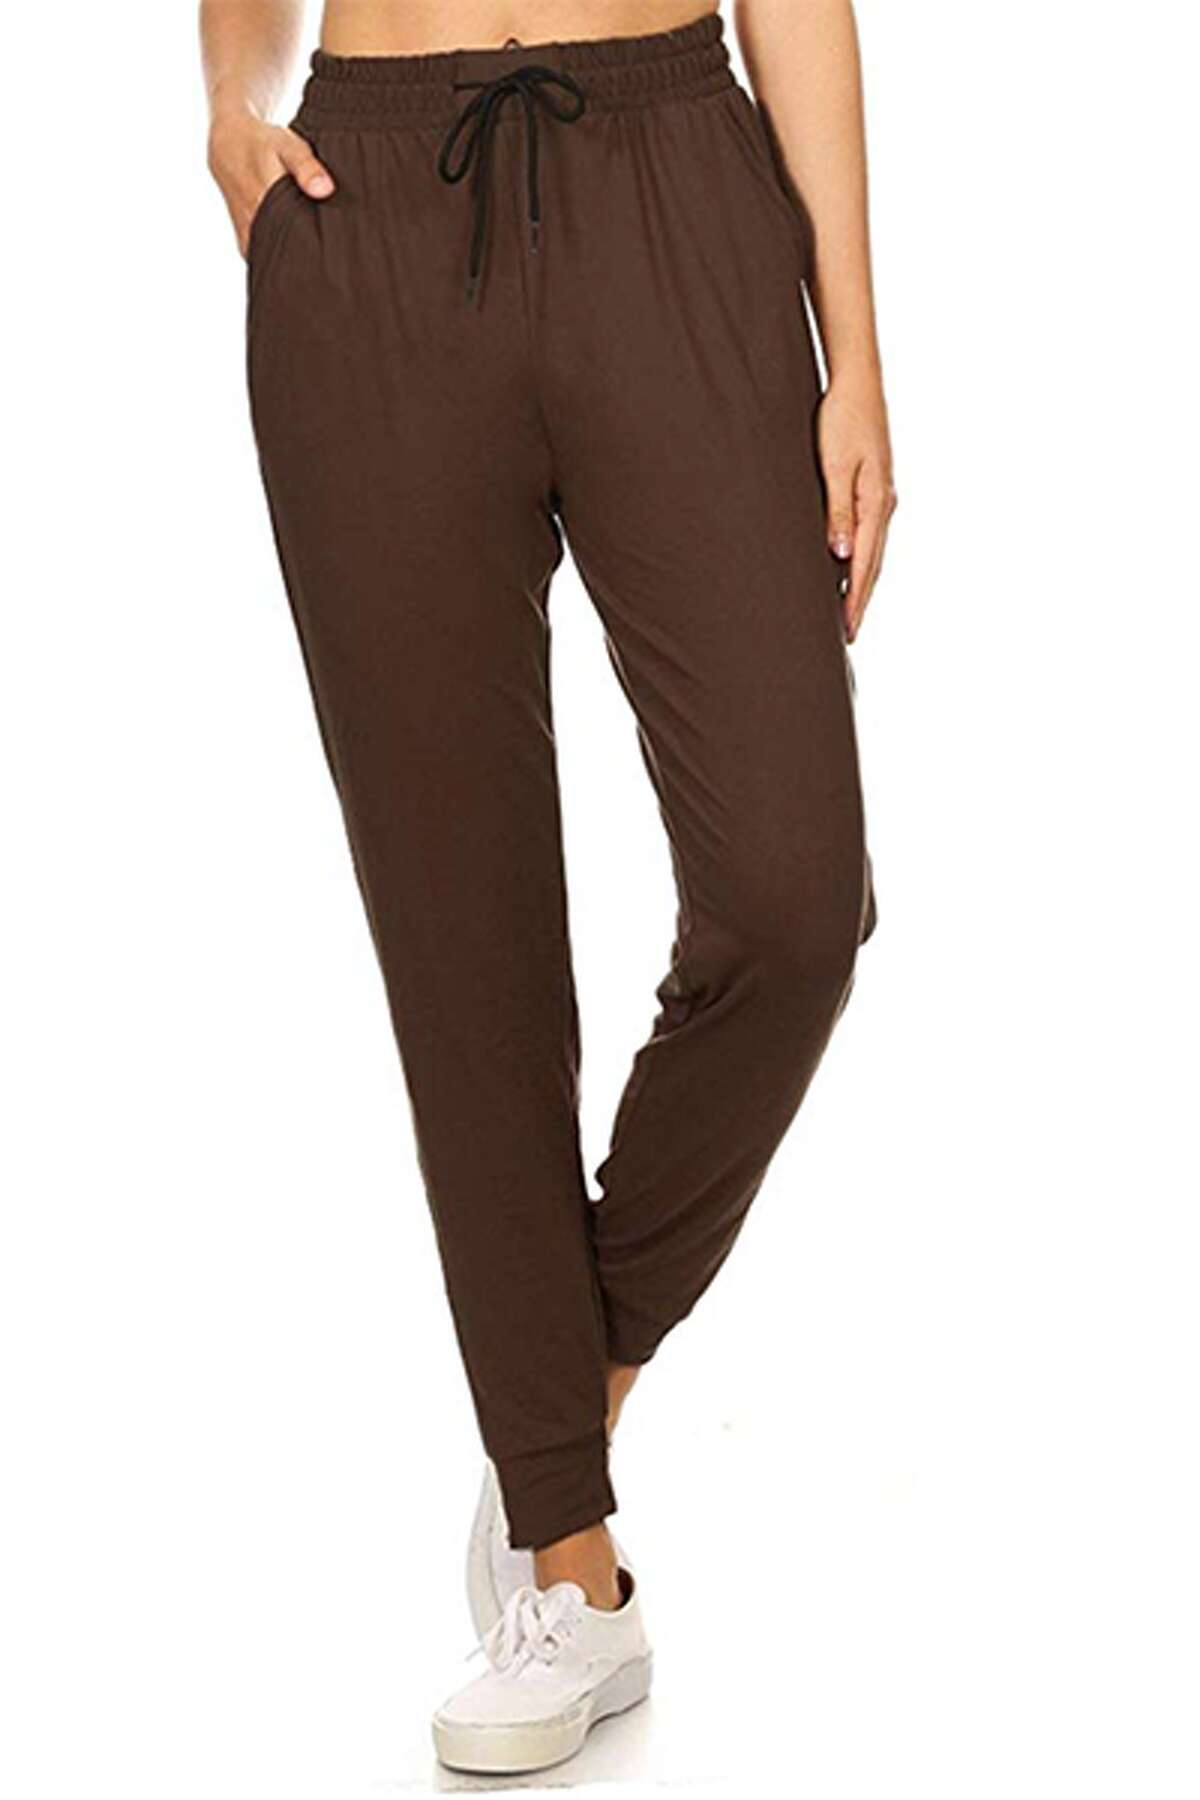 1) Solid Jogger Track Pants with Pockets: $14.99 Shop Now Available in a slew of different colors, these joggers have over 5,000 reviews on Amazon. Customers note that they are soft, comfortable, and best of all, super affordable.